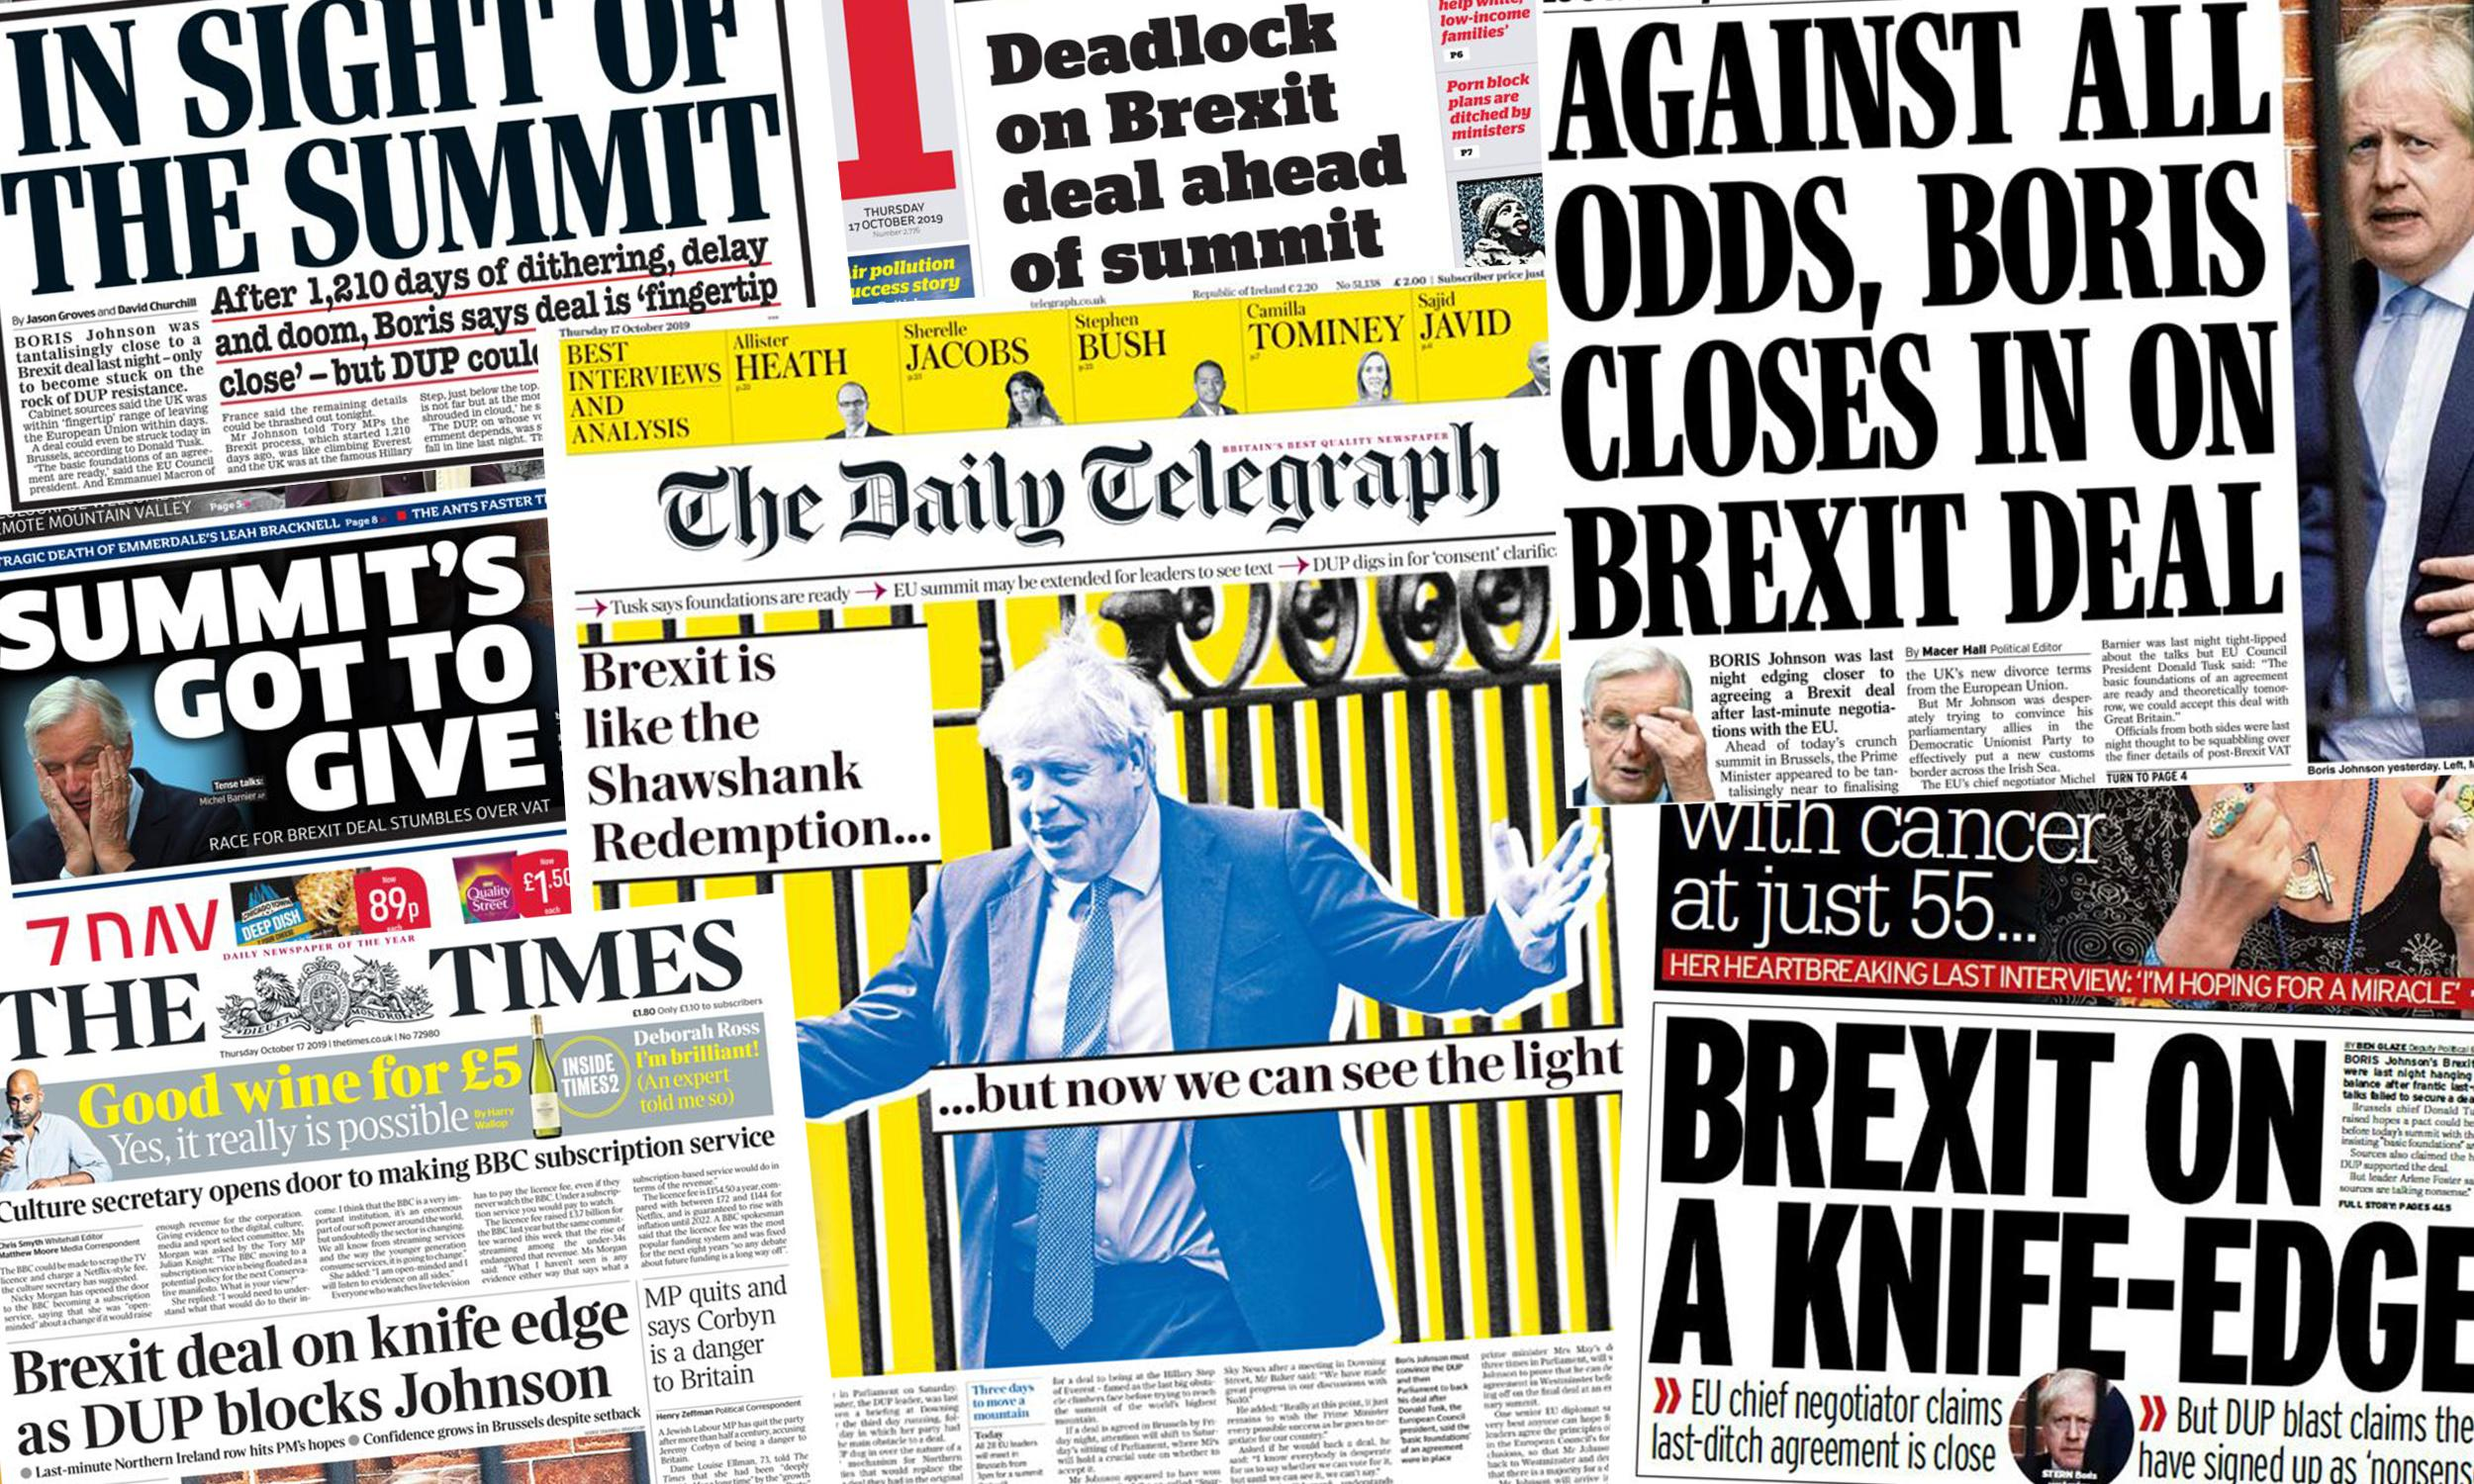 'Summit's got to give': how the papers covered Johnson's Brexit deadline